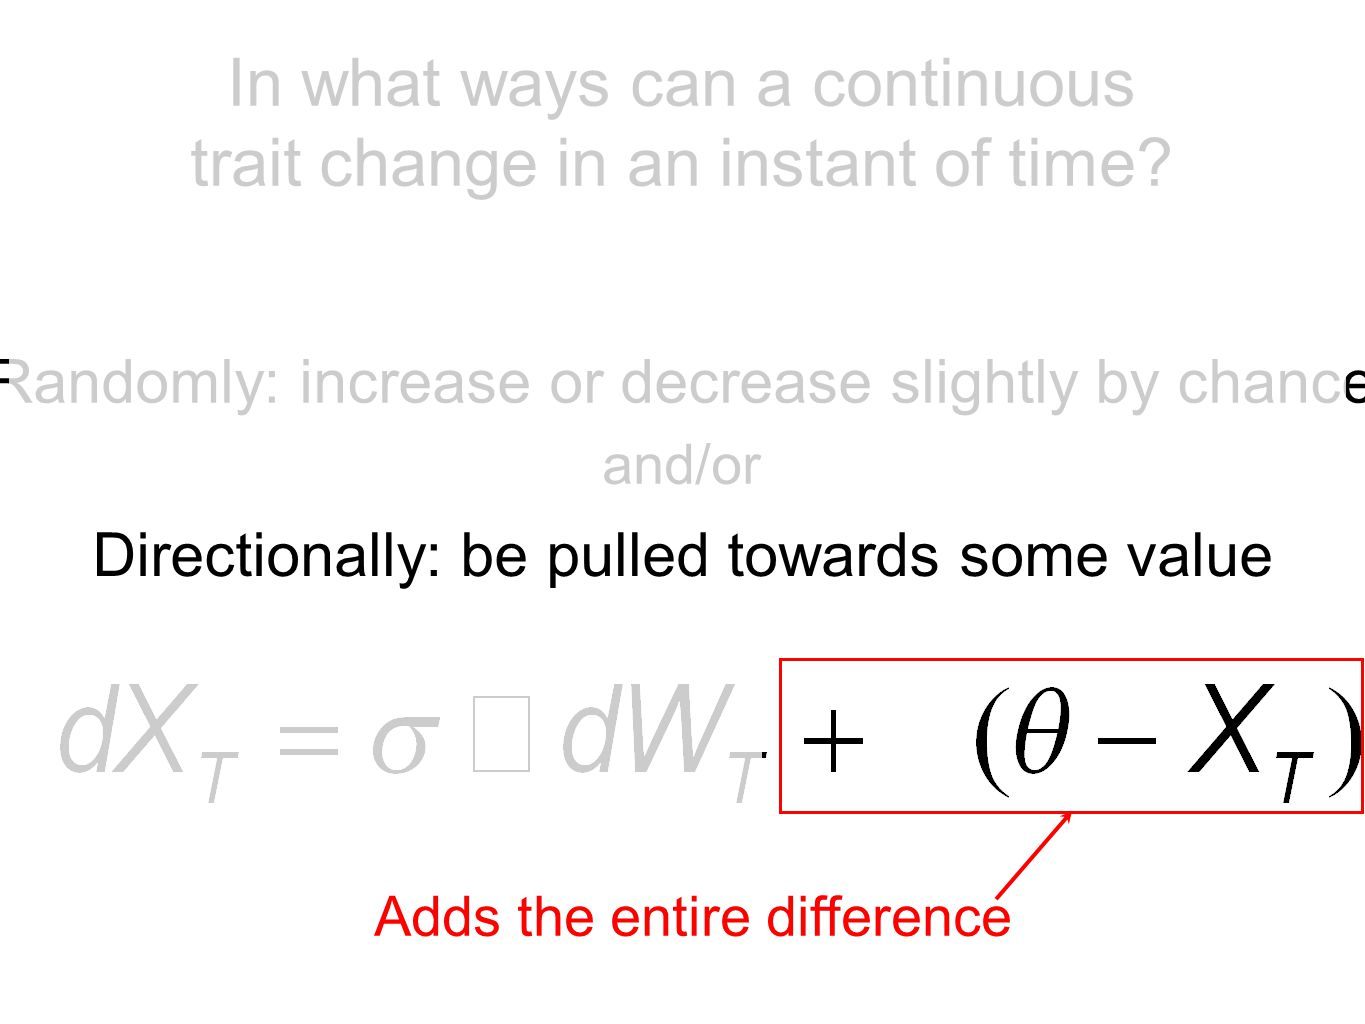 Randomly: increase or decrease slightly by chance Directionally: be pulled towards some value and/or Allows directional change less than 100% (even zero) In what ways can a continuous trait change in an instant of time?